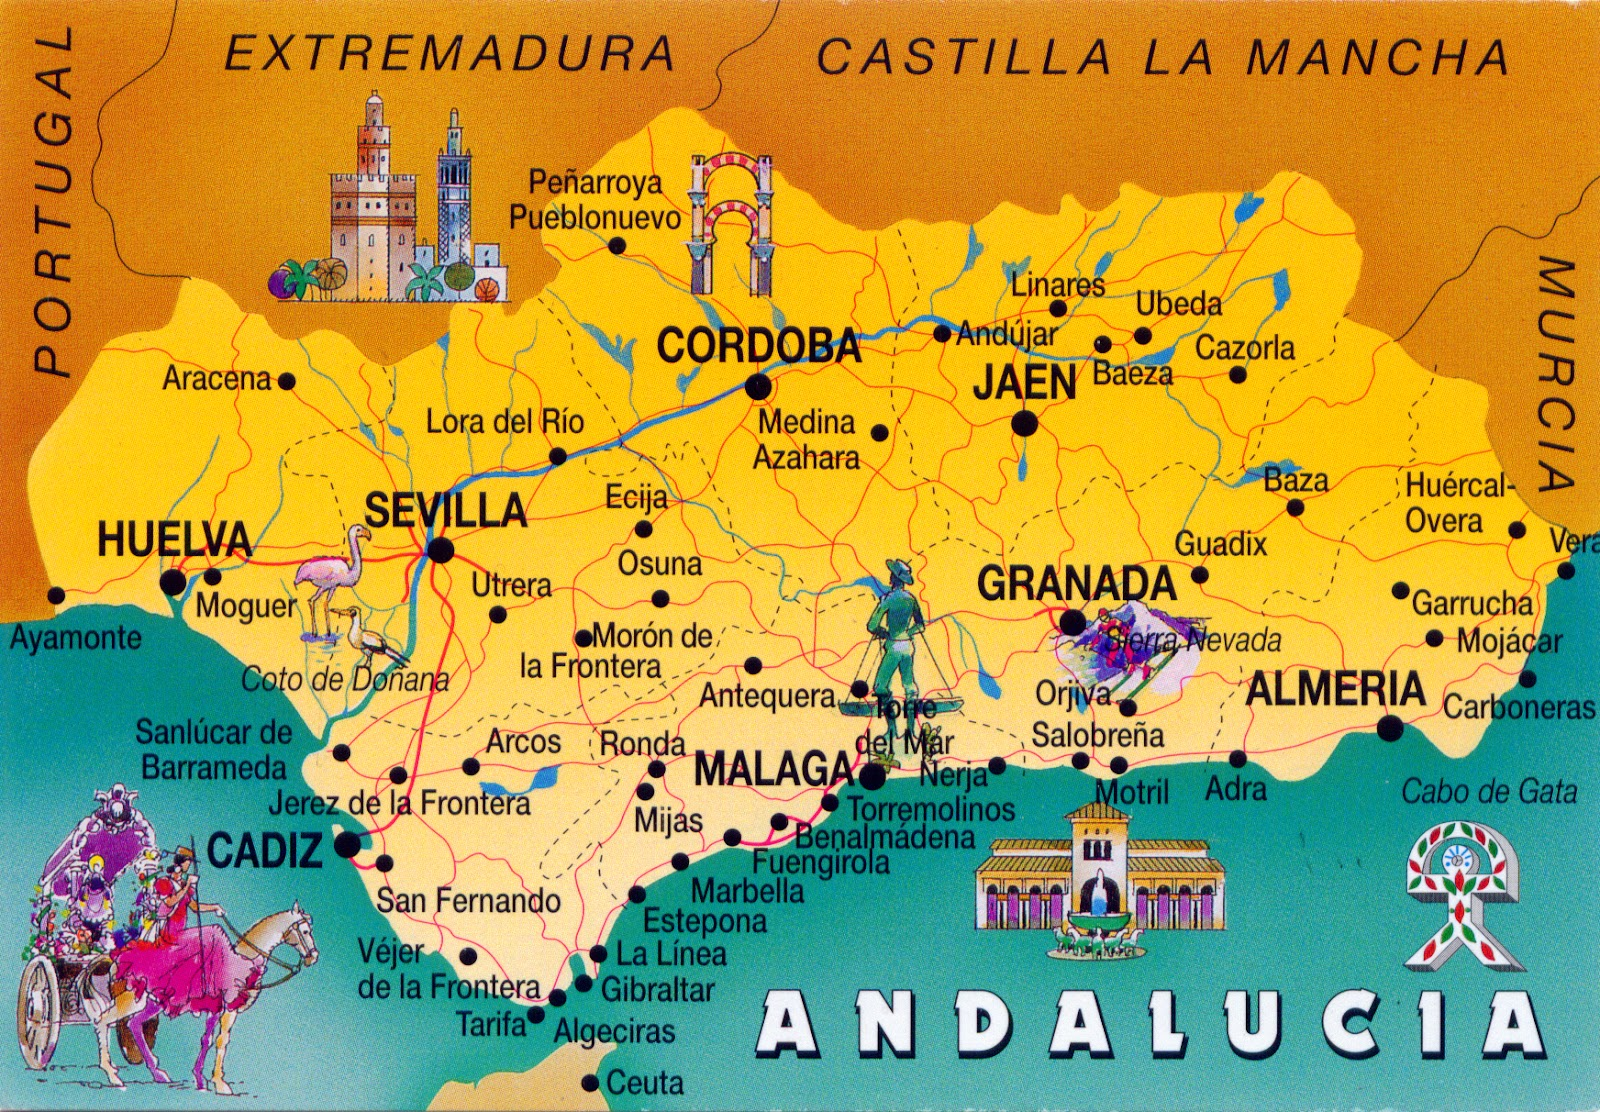 WORLD COME TO MY HOME 0988 SPAIN Andalusia The map of Andalusia